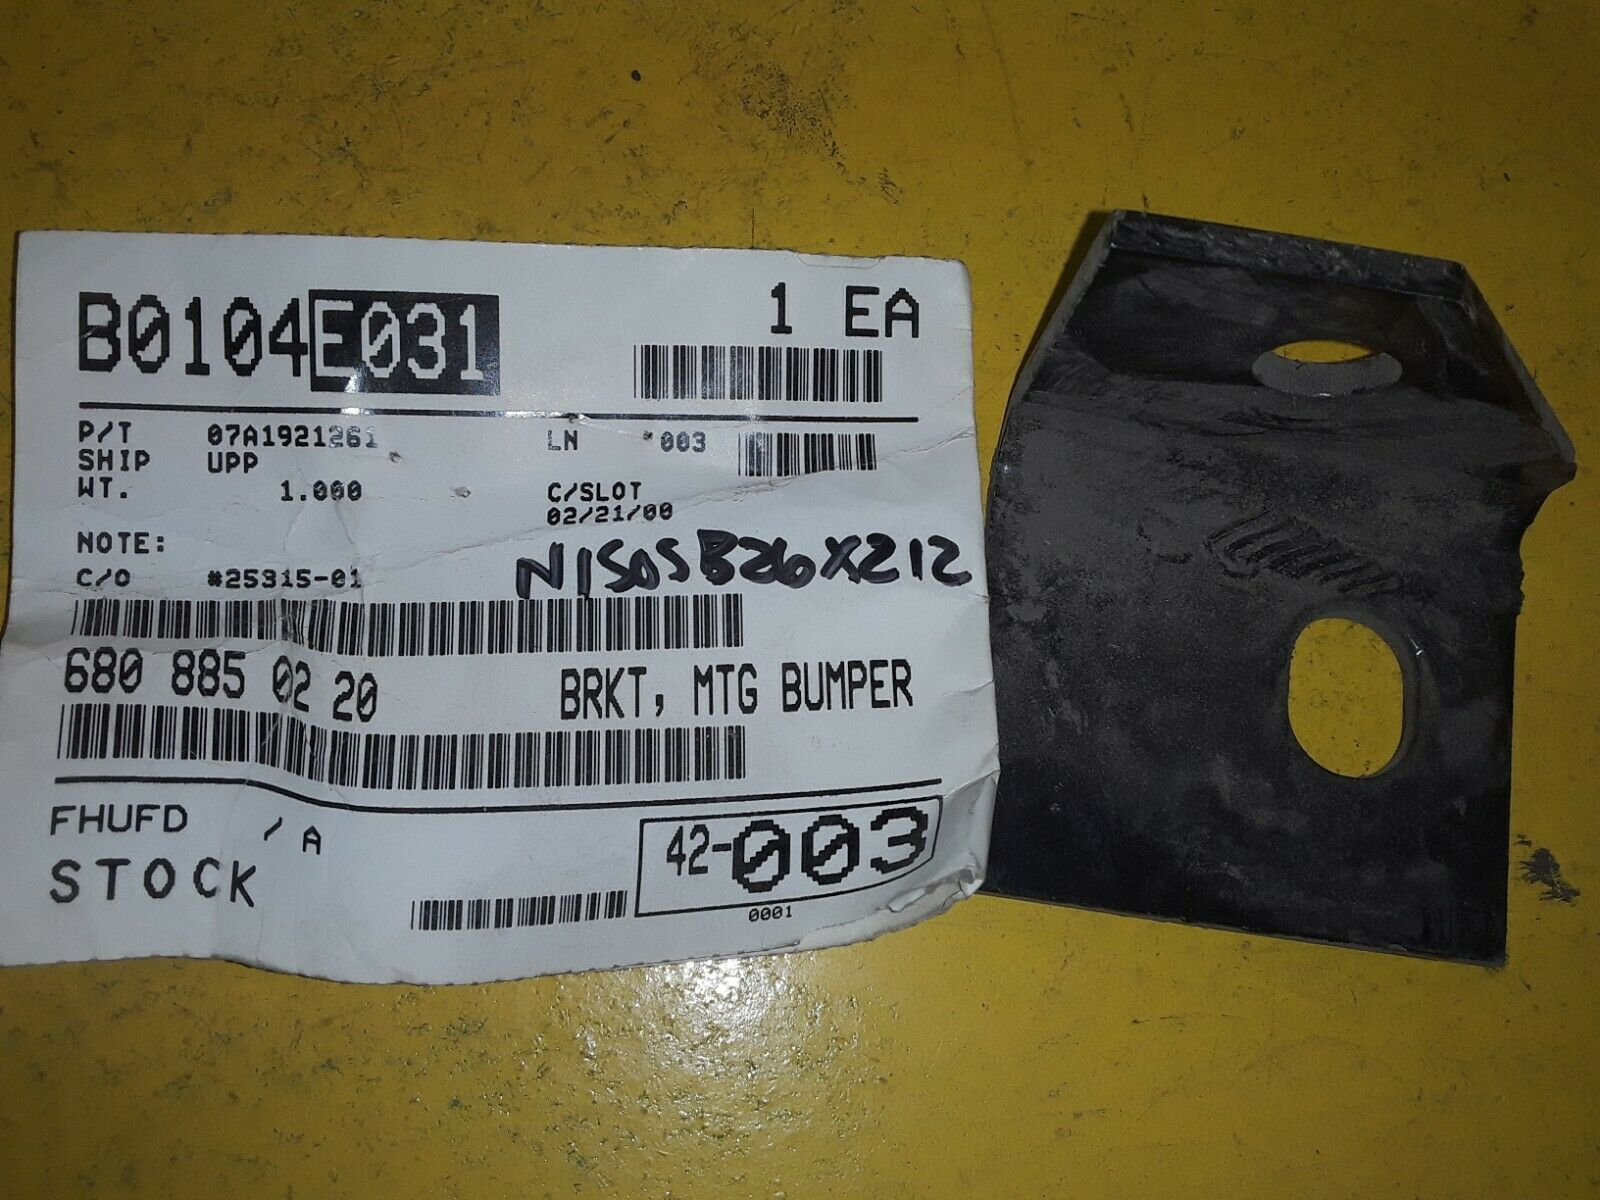 FREIGHTLINER mercedes bumper BRACKET 680-885-02-20 / 680-885-0220-D  Does not apply